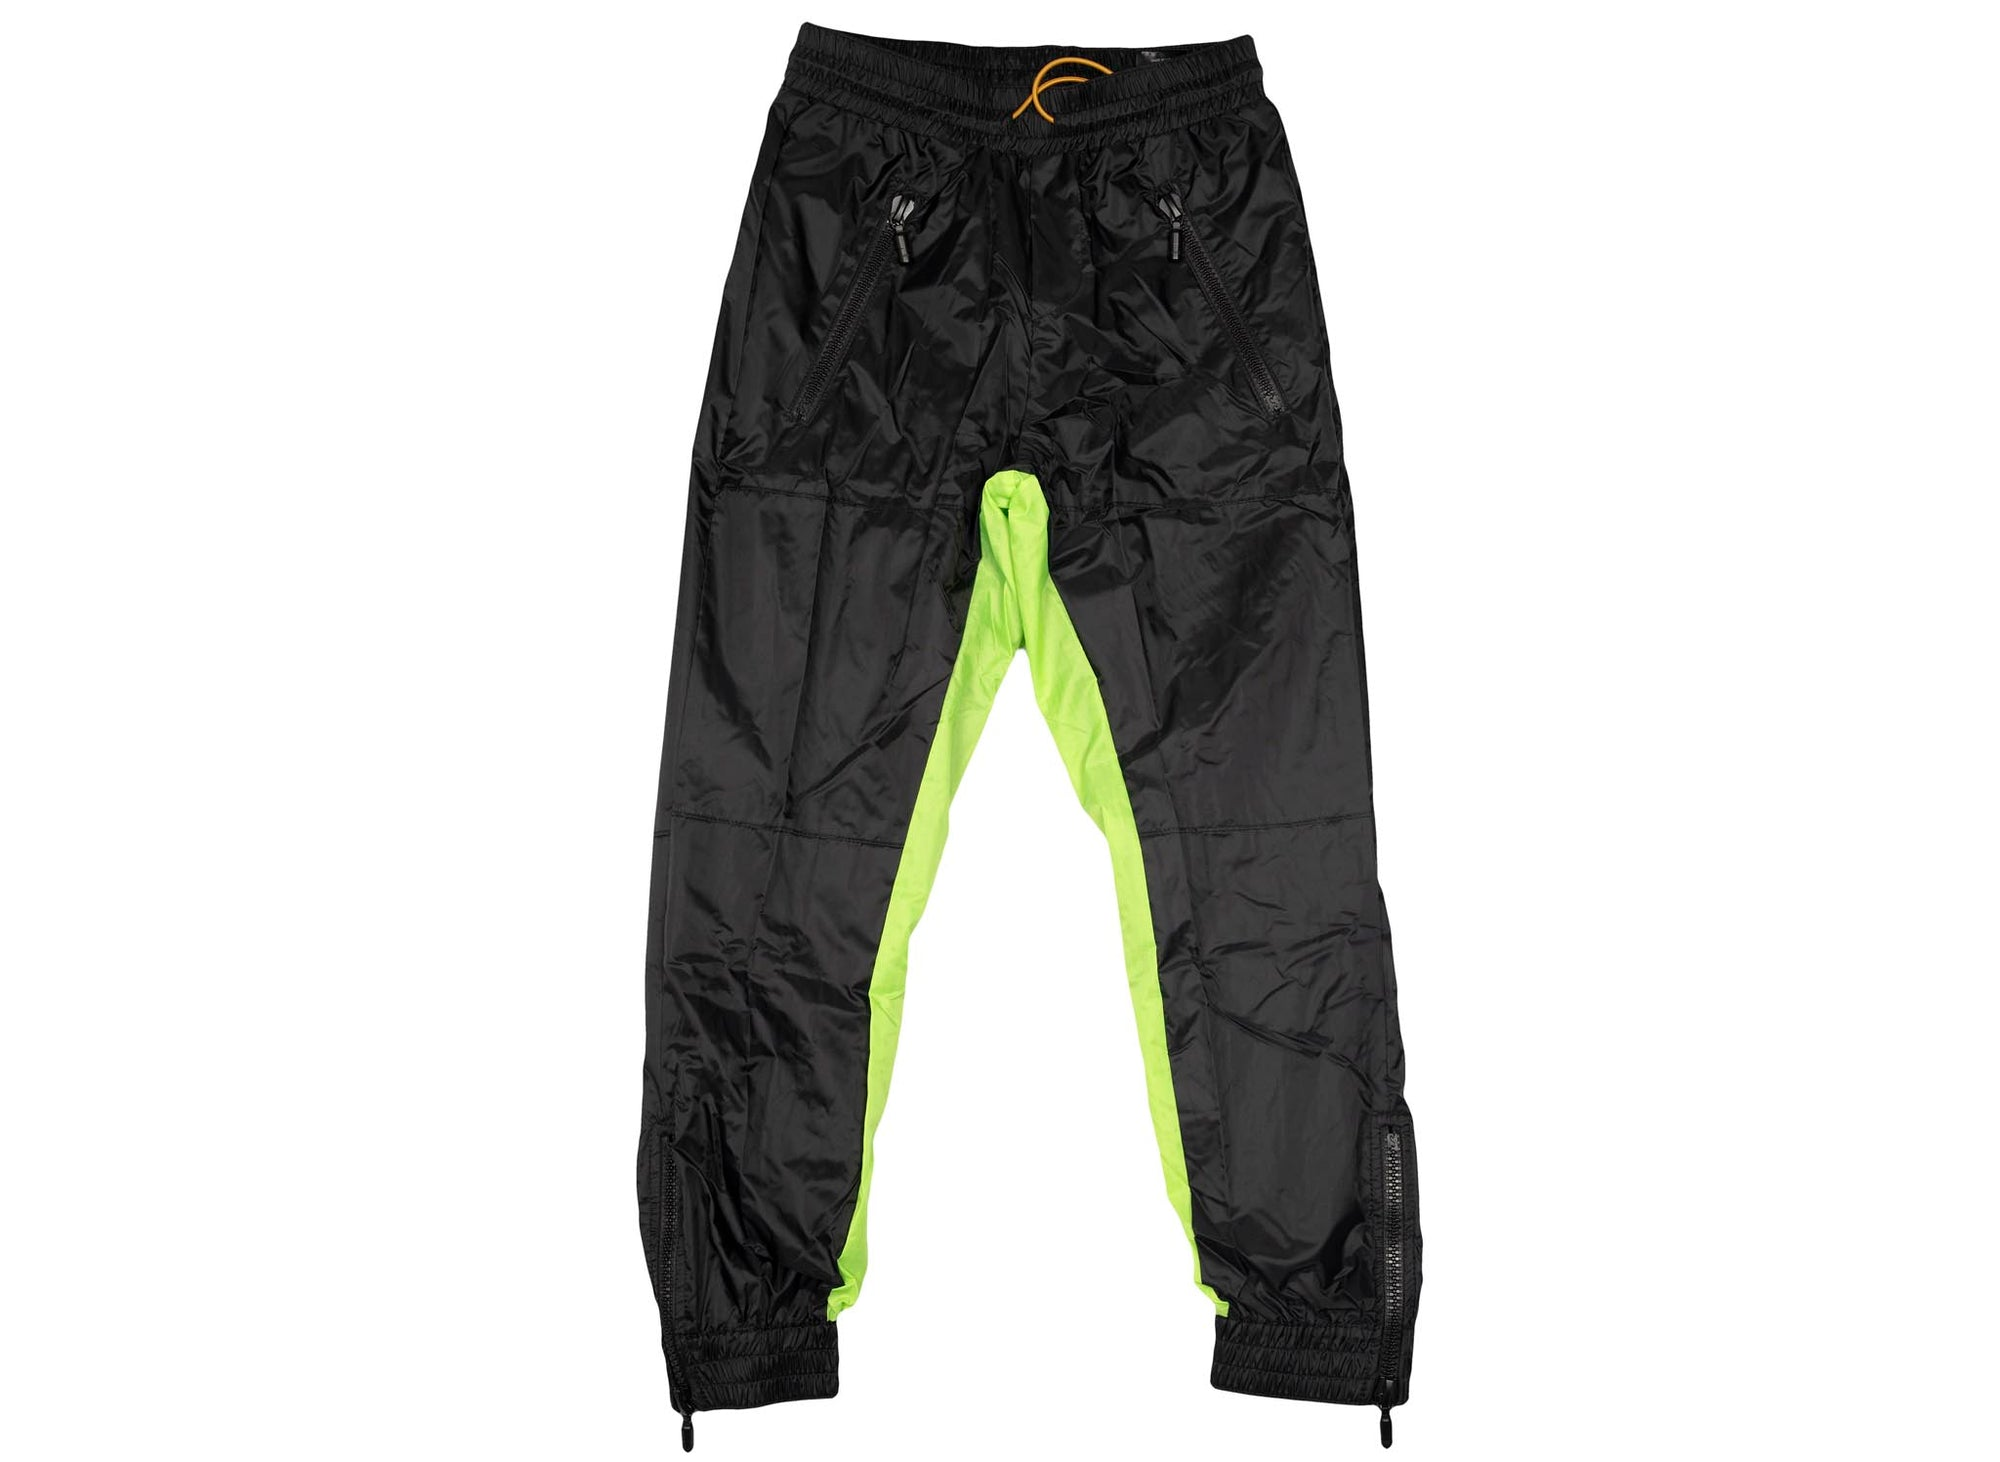 Rhude Flight Suit Pants 'Black/Neon'